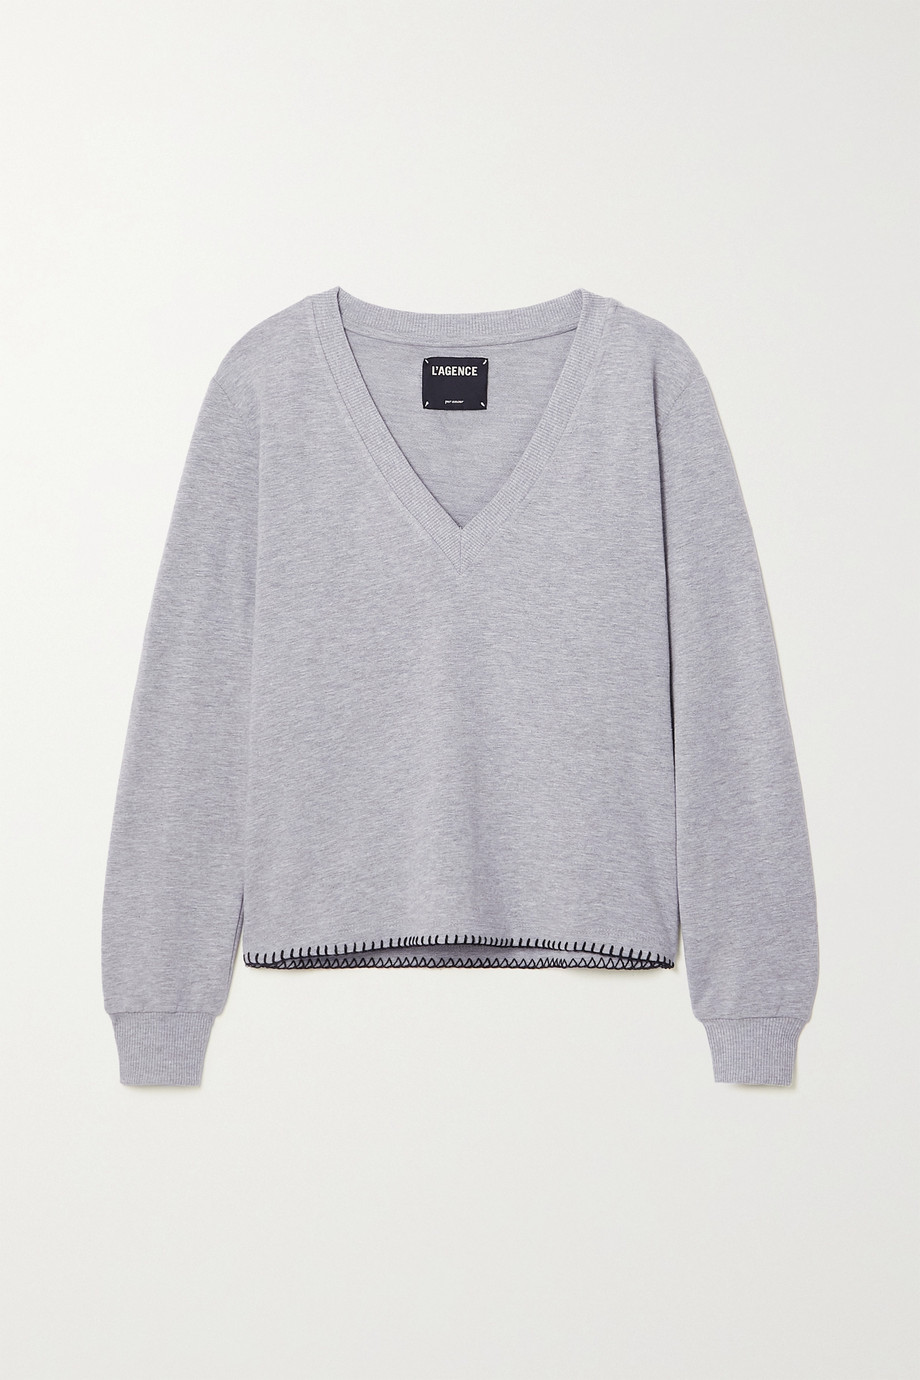 L'AGENCE Helena stretch cotton and modal-blend sweatshirt